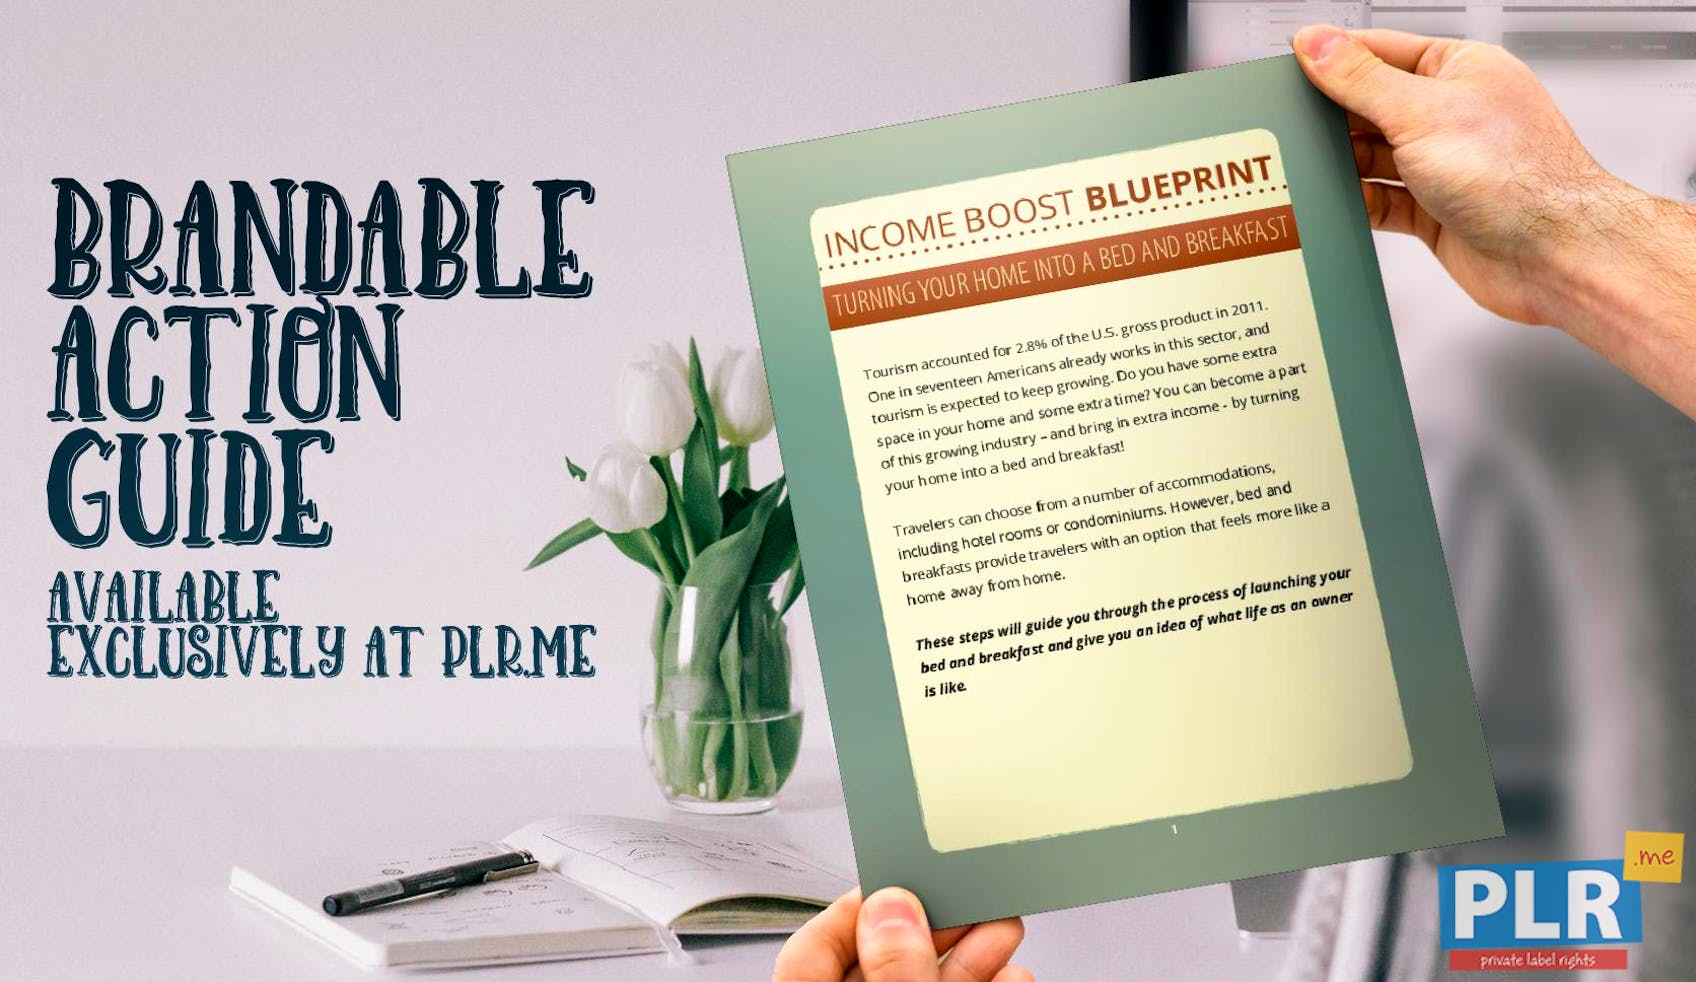 Income Boost Blueprint Bed & Breakfast